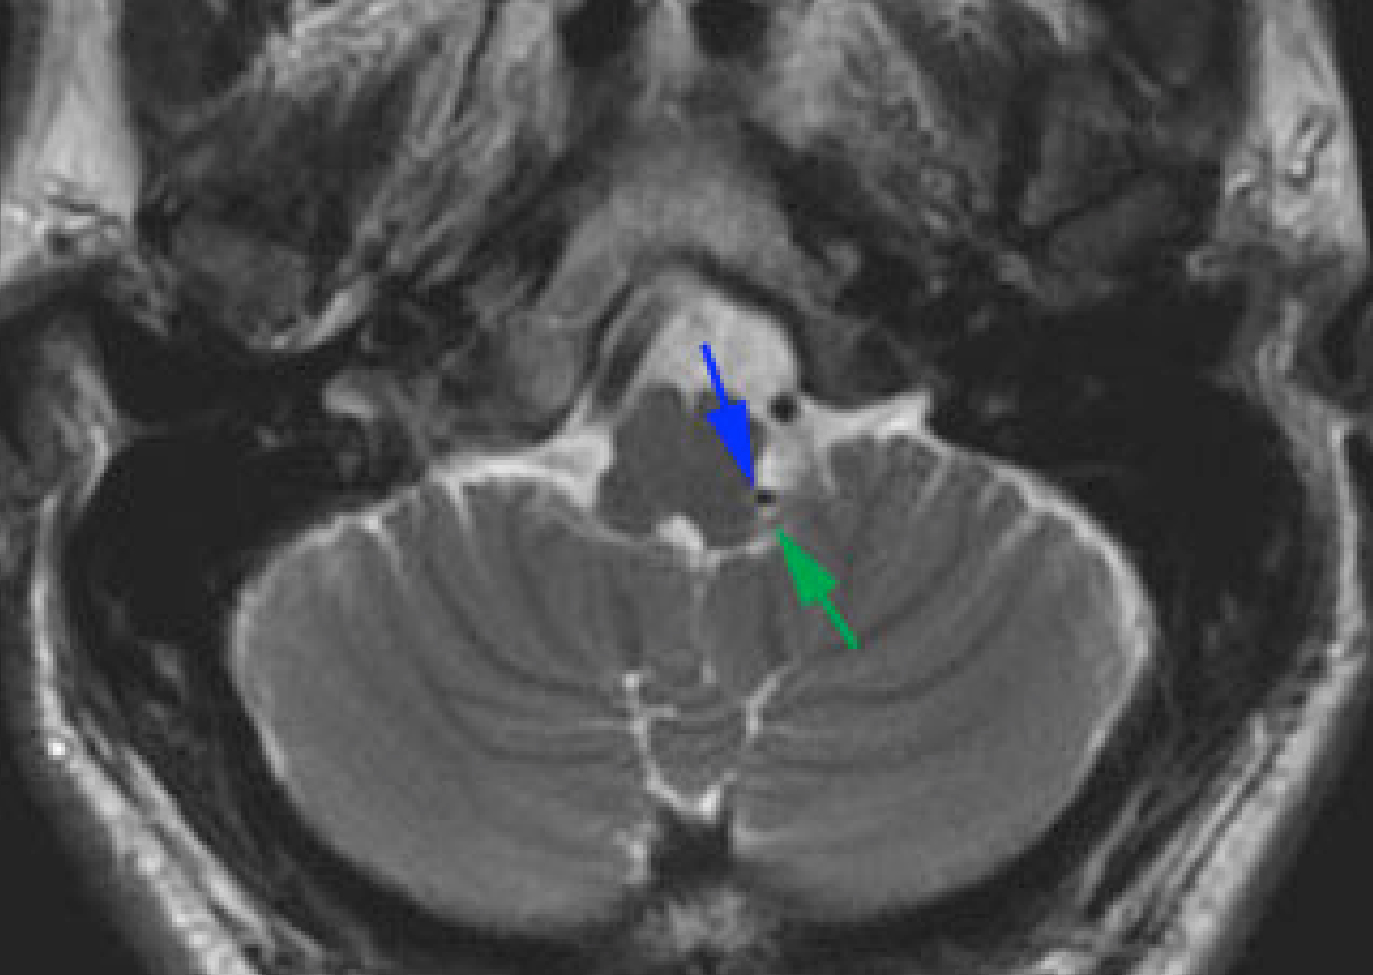 Figure 1: Axial high-resolution MRI demonstrates a vascular loop (blue arrow) at the level of lower cranial nerves near the brainstem (green arrow).